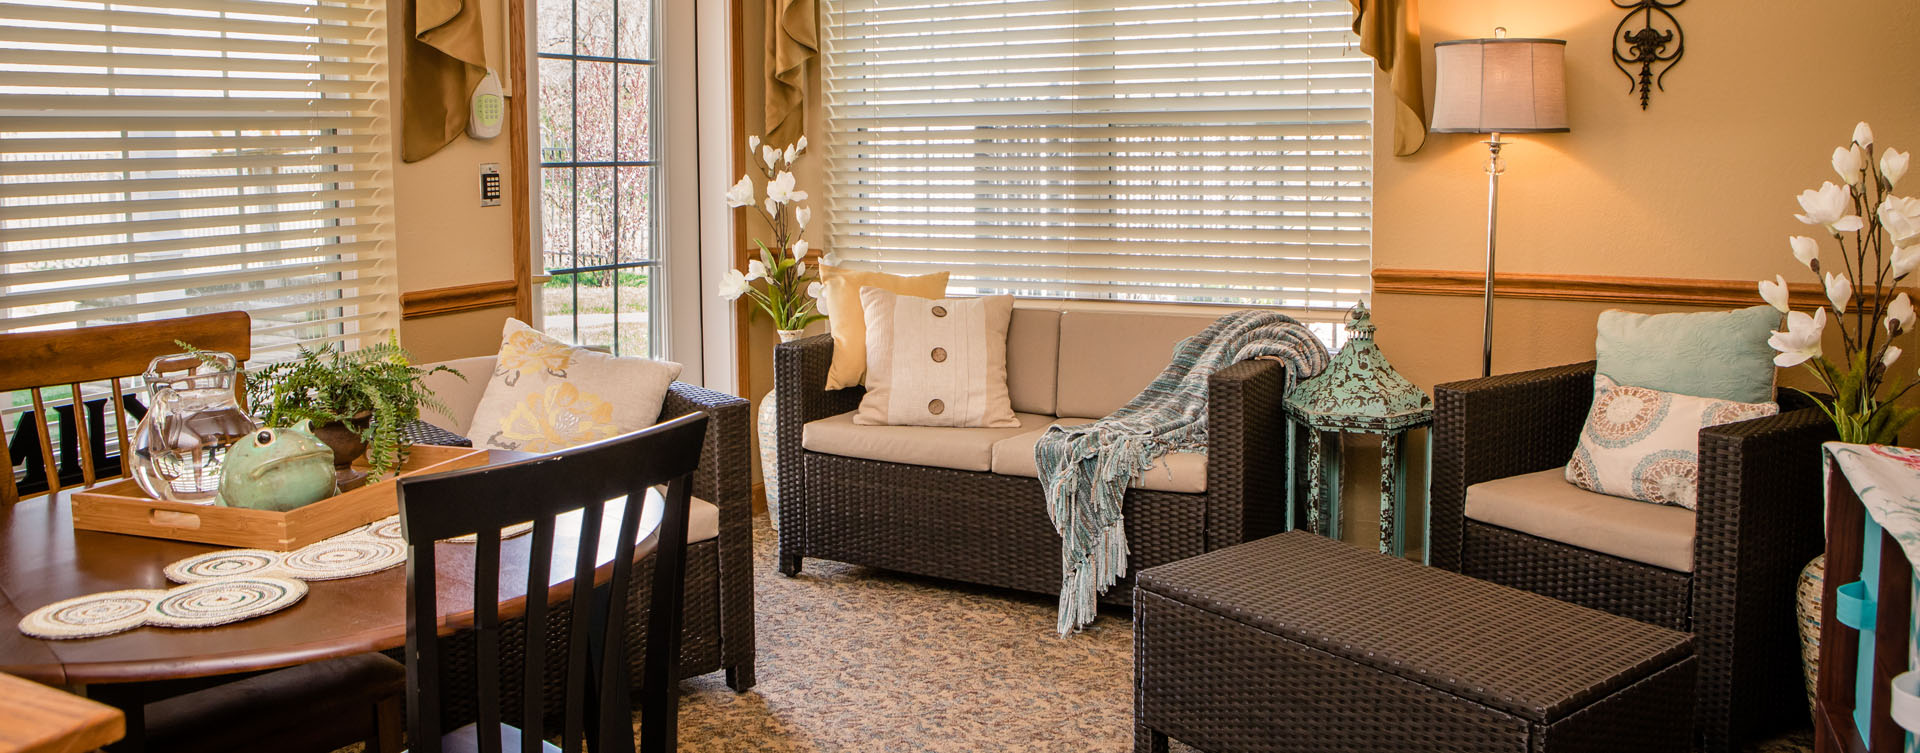 Relax in the warmth of the sunroom at Bickford of Macomb